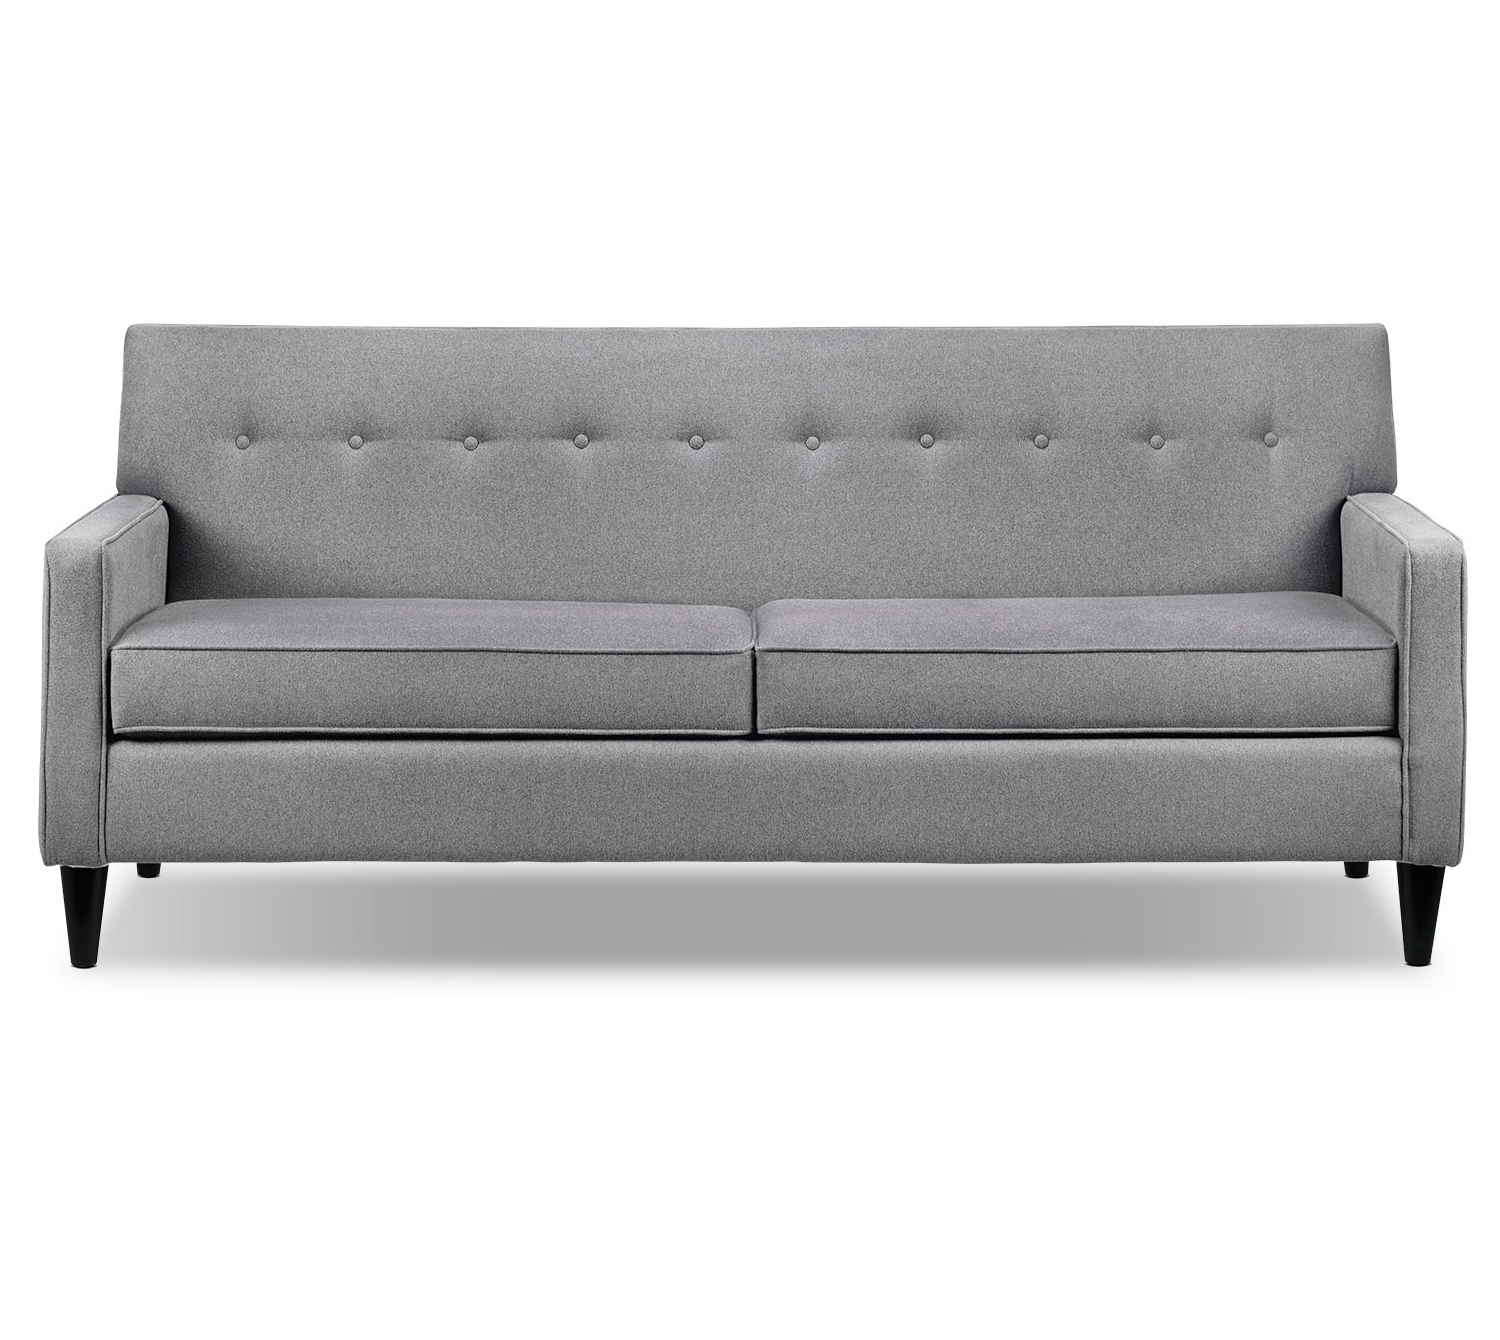 Newest Newfoundland Sectional Sofas Within Specter Sofa – Hayward's – The Best Furniture St (View 11 of 15)